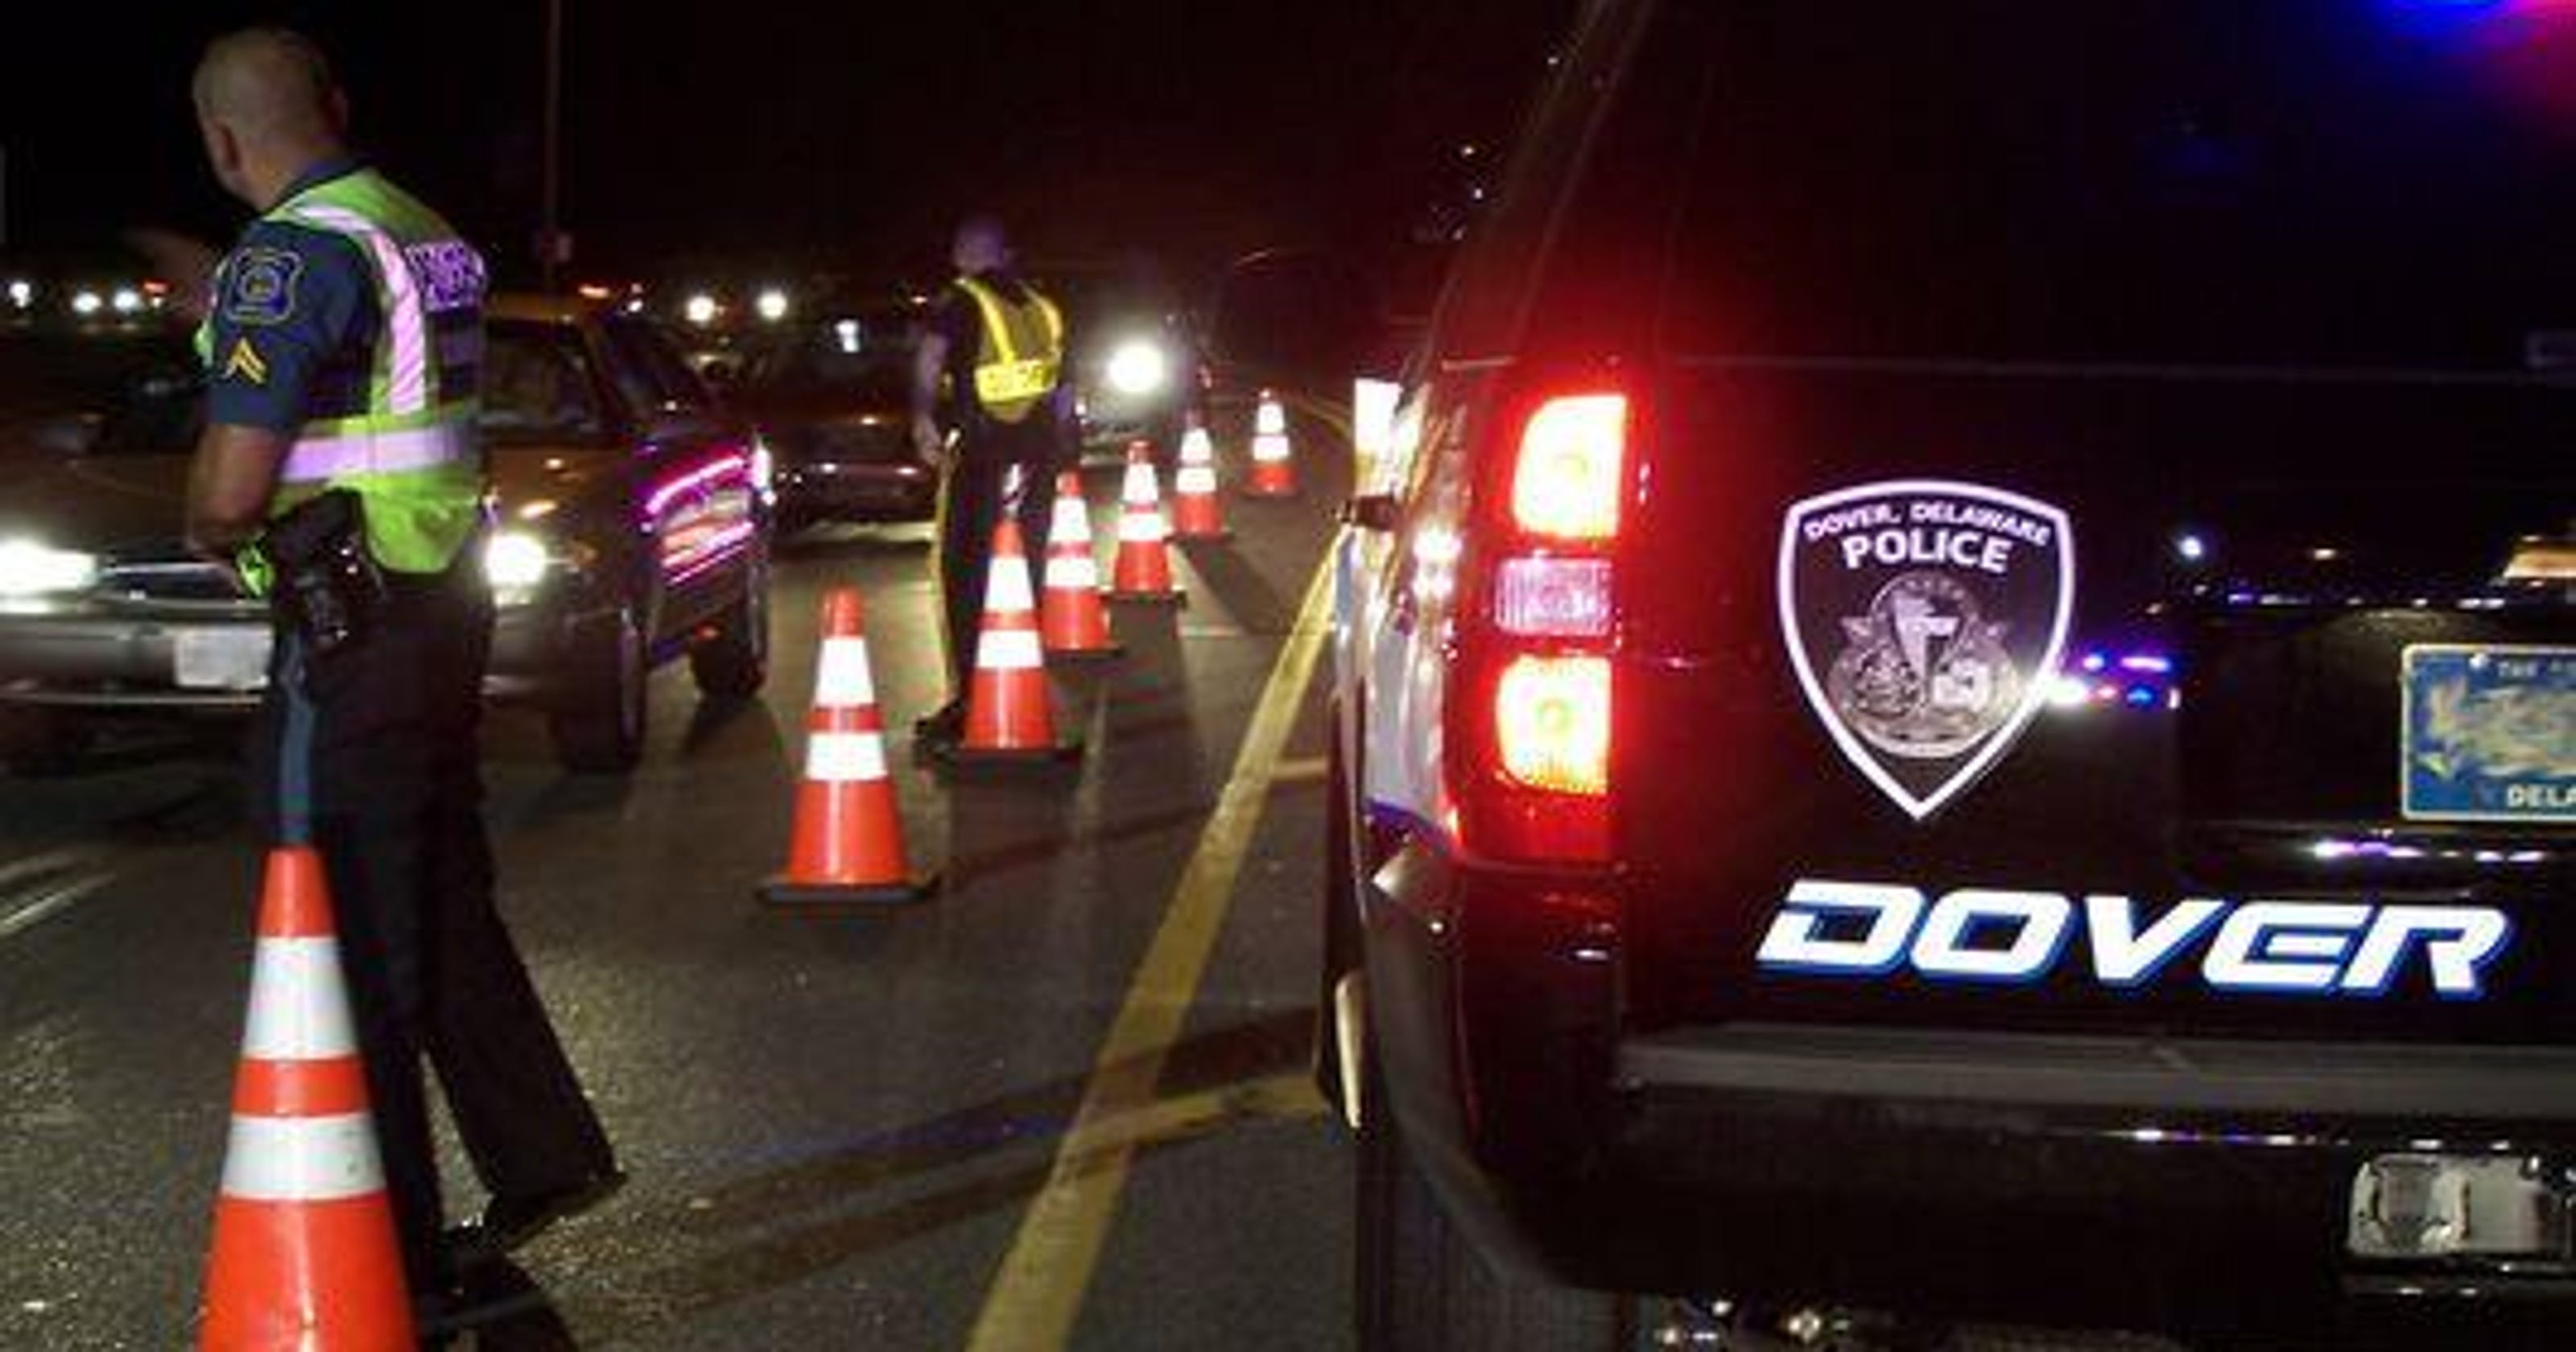 Delaware DUI checkpoints slated for Saturday